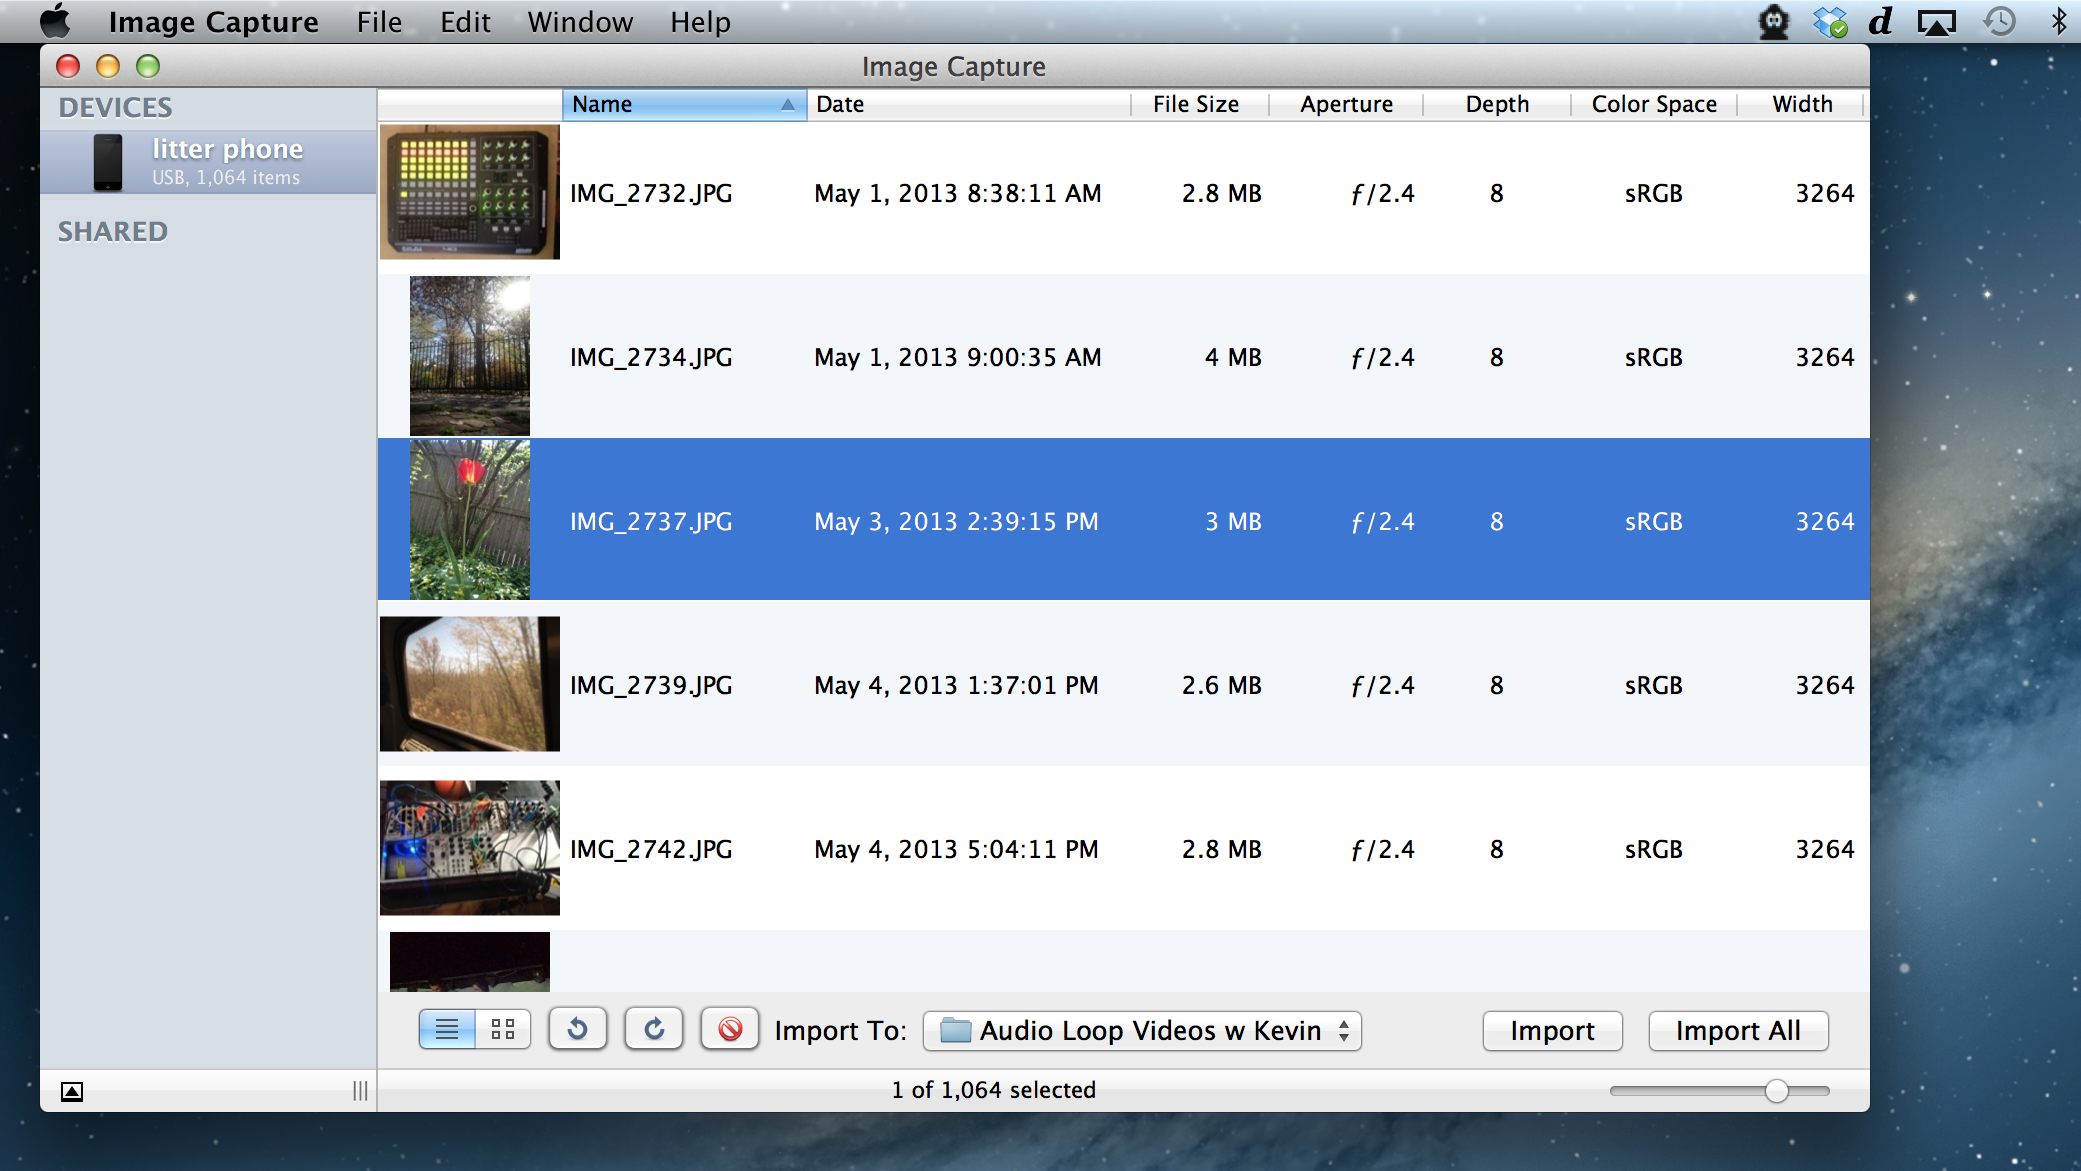 Use the free 'Image Capture' utility, iPhoto, or DropBox app to copy movies and images from the iPhone or iPad camera.